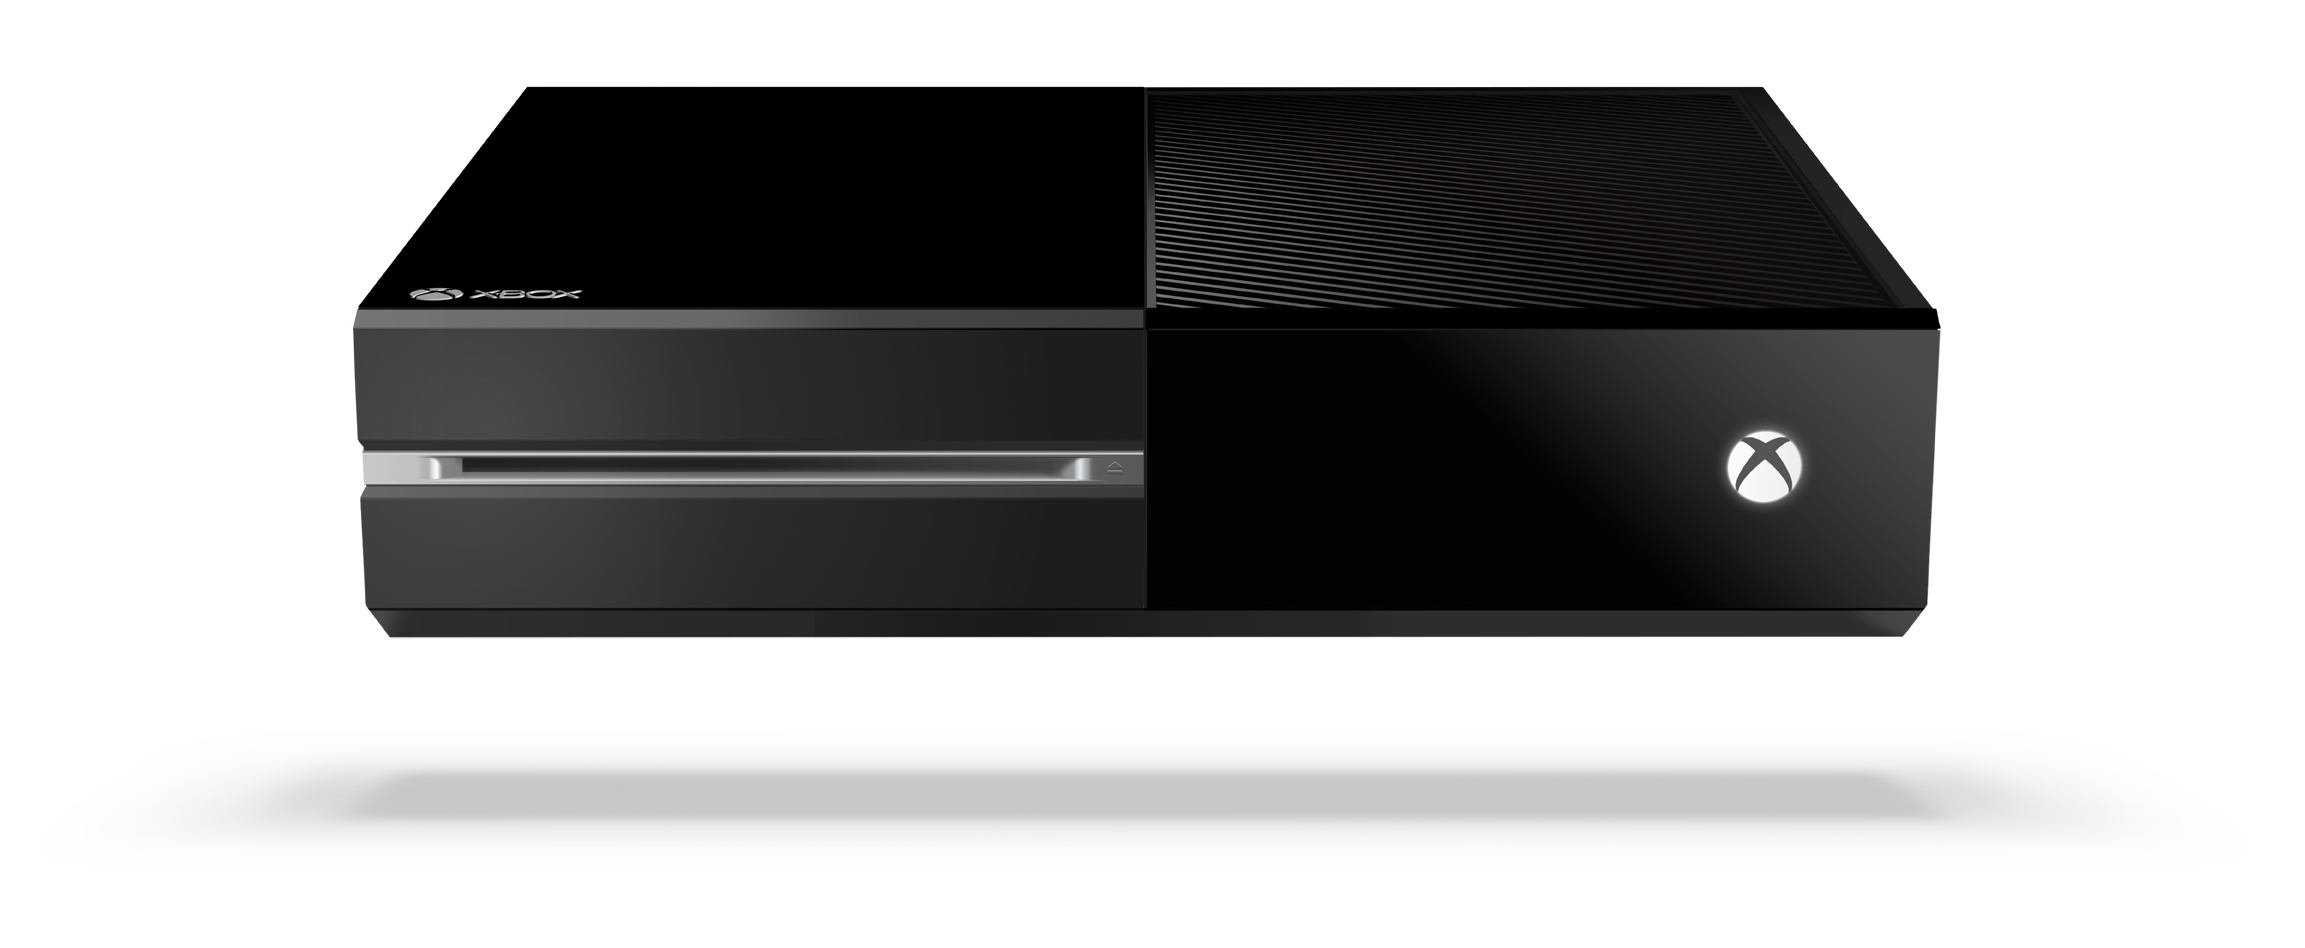 XBox One games console press image courtesy Microsoft